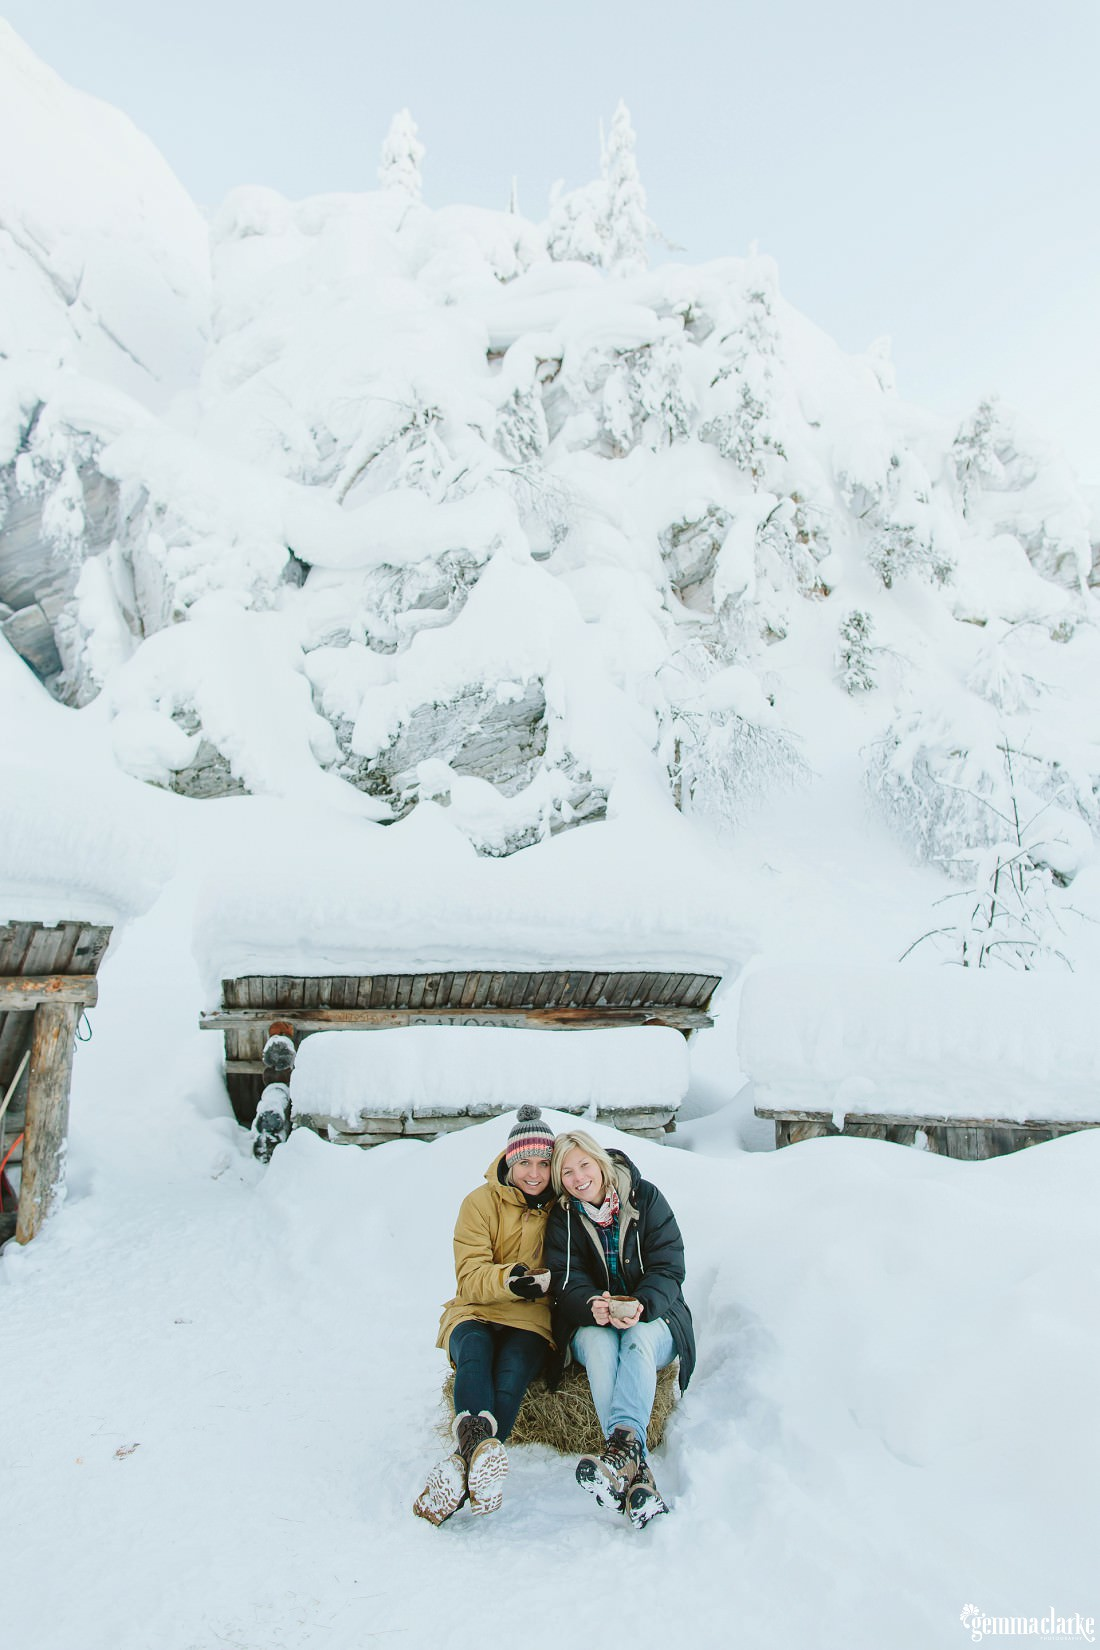 A smiling couple sitting in front of a snow covered cabin